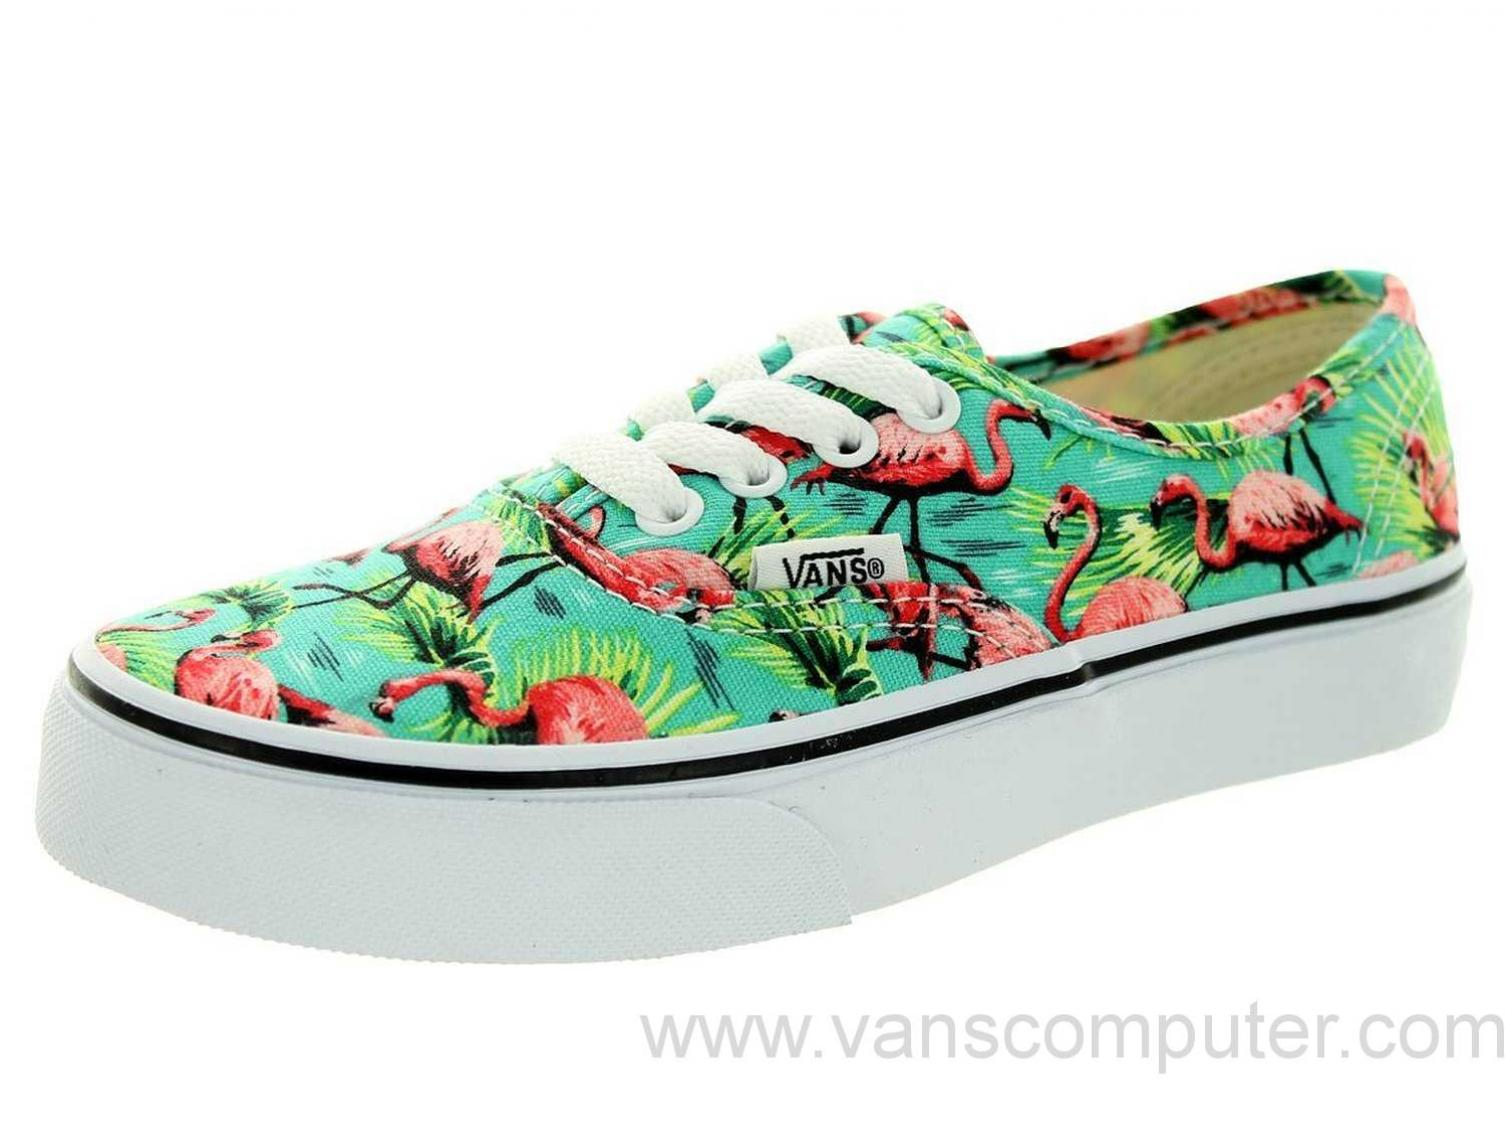 Black Men Vans | Flamingo Vans | Cool Vans Shoes for Guys